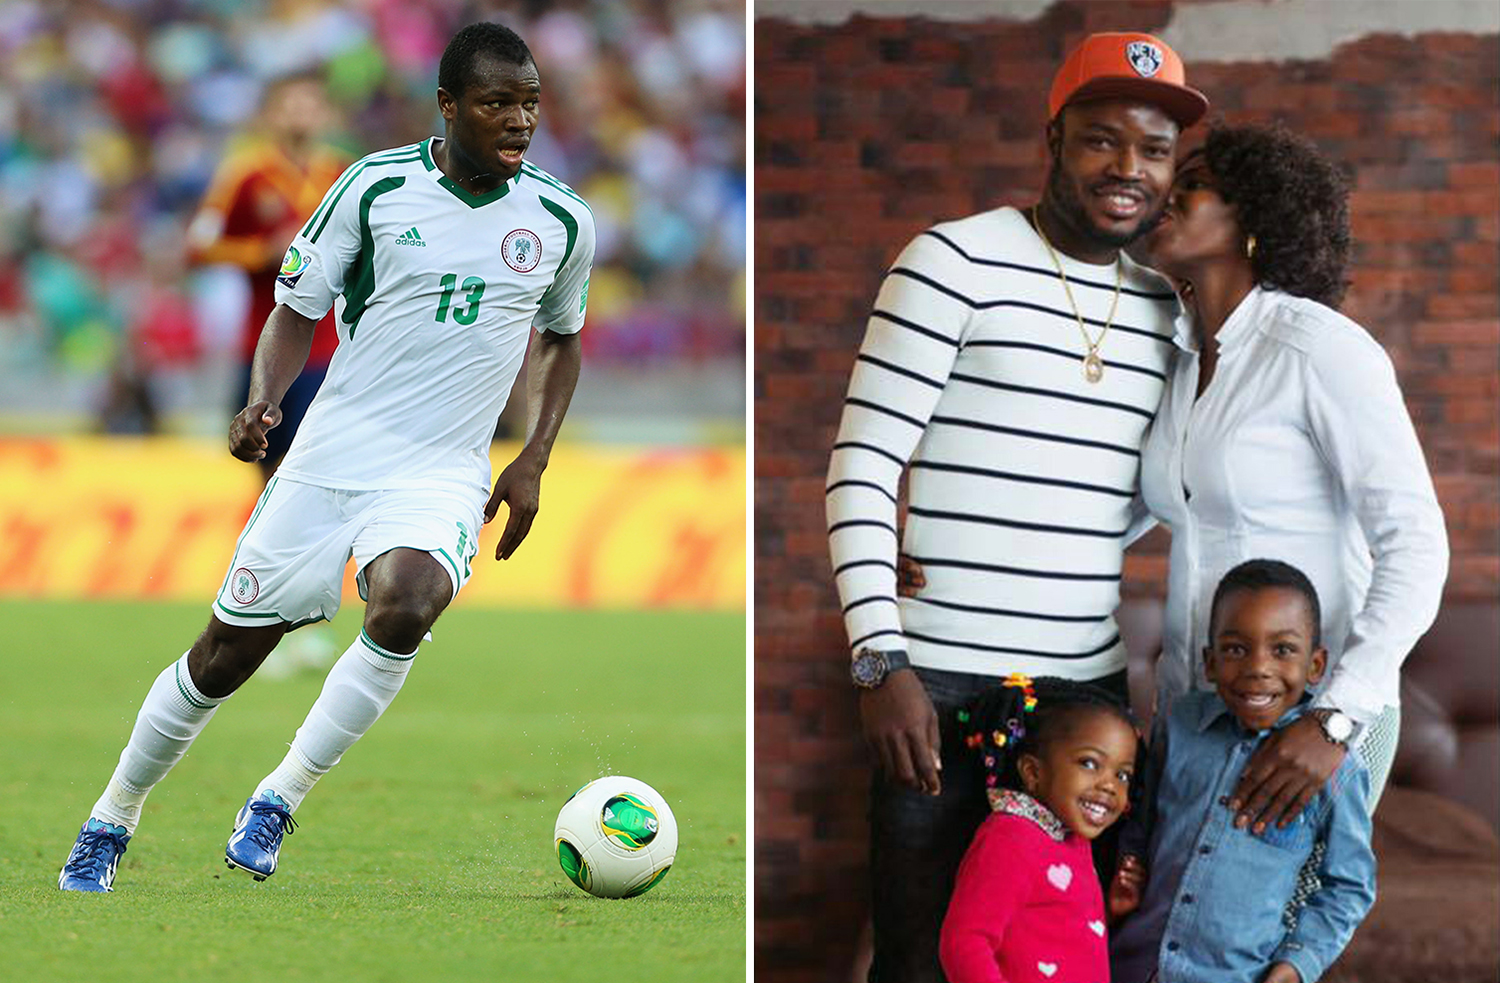 Nigeria's player Fegor Ogude's wife kidnapped by gunmen